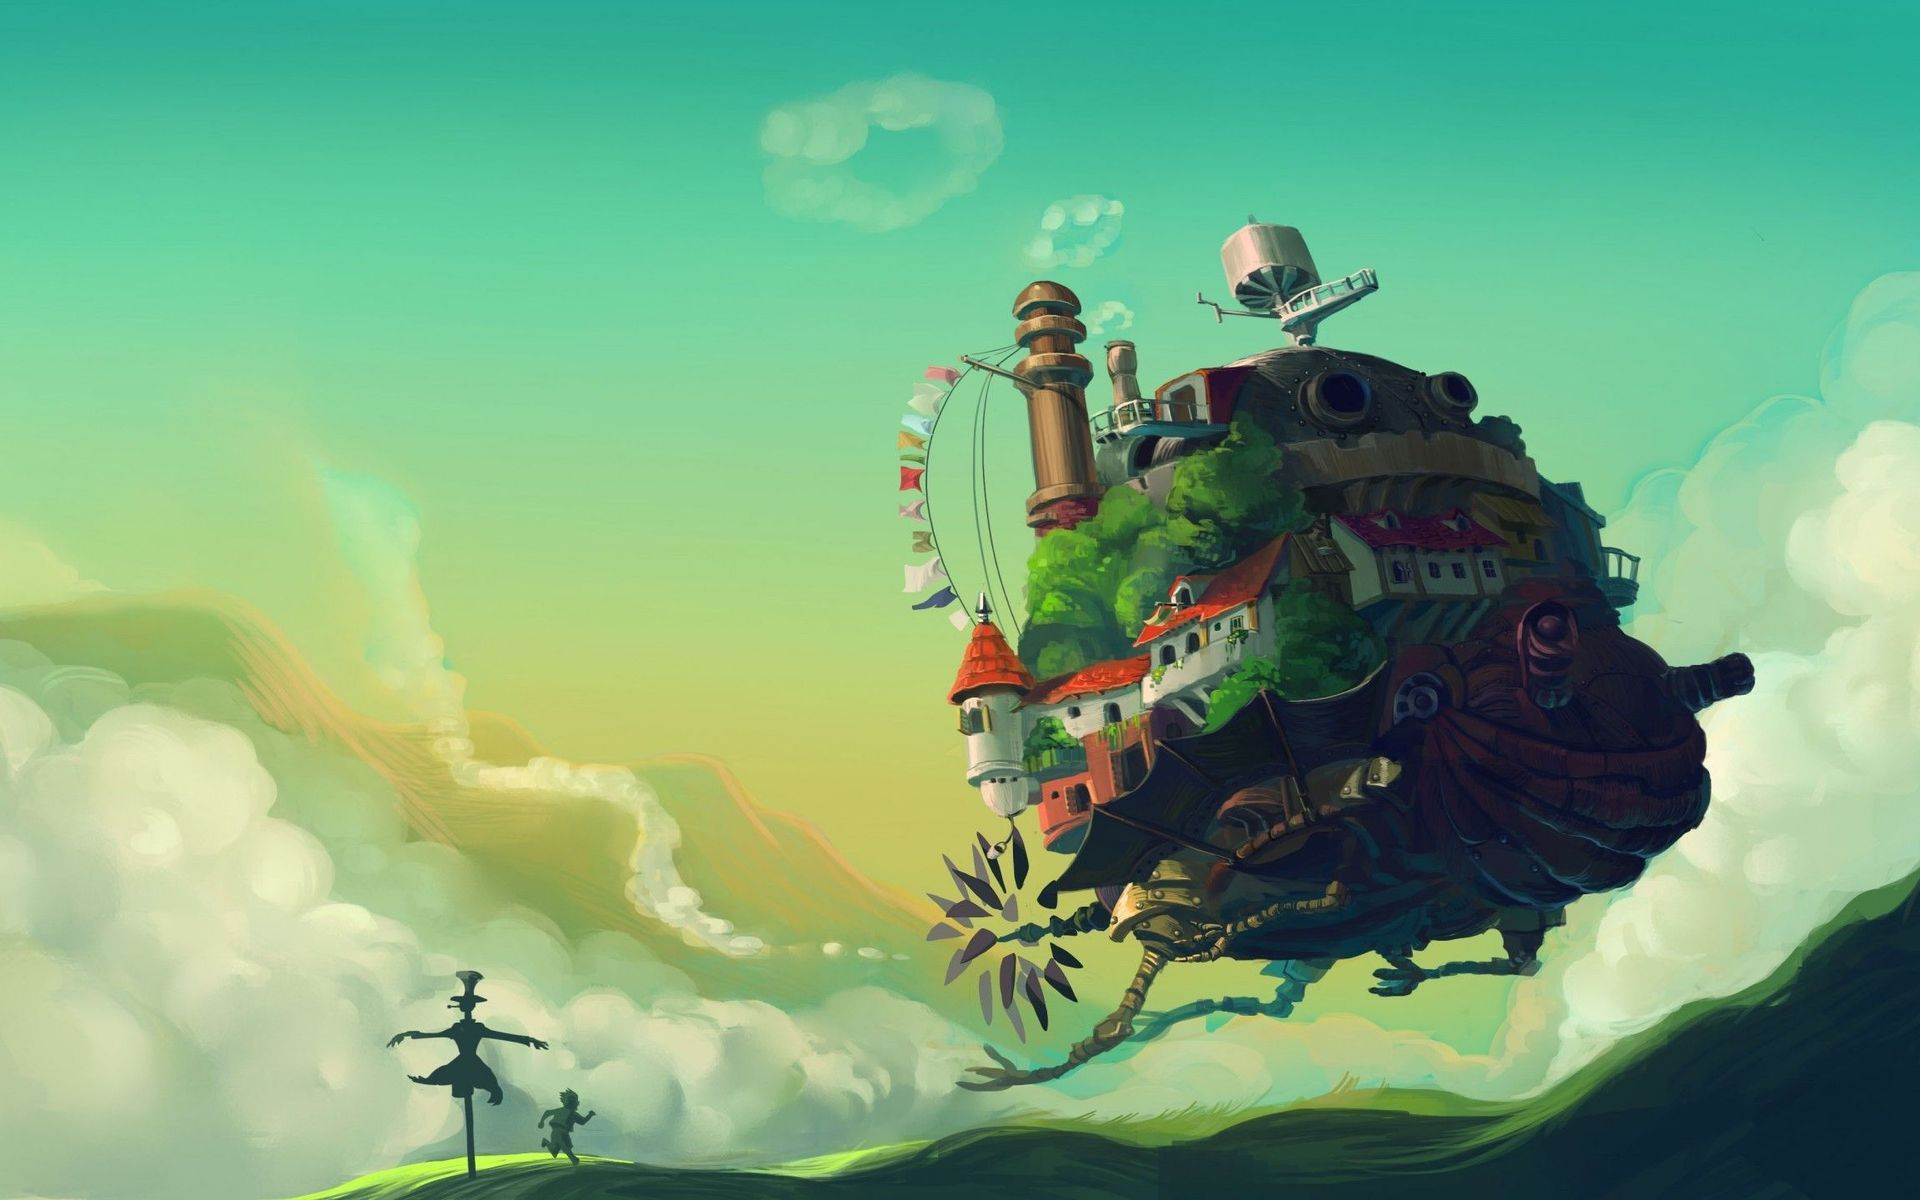 Howl S Moving Castle Wallpapers Hd Free Download Studio Ghibli Background Howls Moving Castle Wallpaper Studio Ghibli Poster